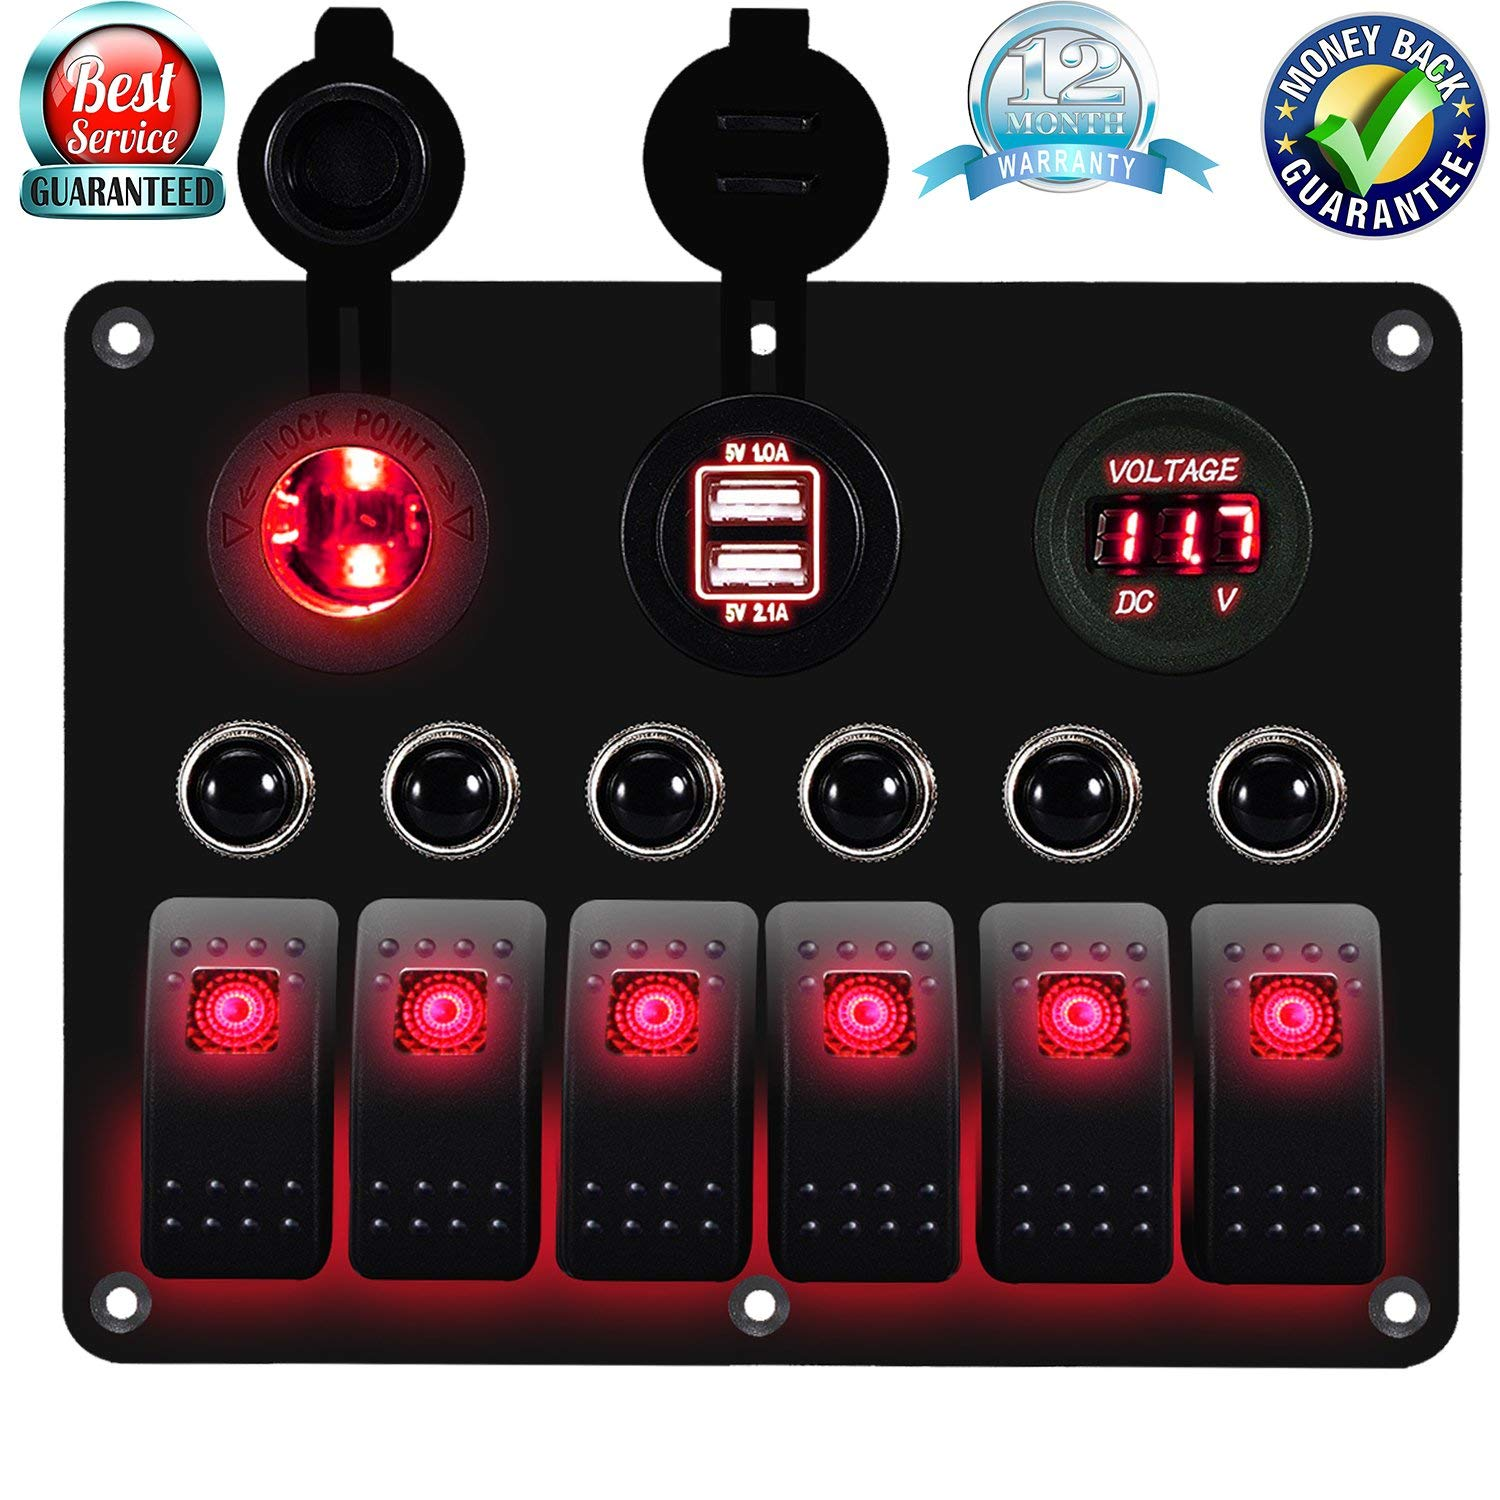 6 Gang Circuit LED Car Marine Boat Rocker Switch Panel Dual USB Waterproof Power Socket Breaker Voltmeter Overload Protection -Red